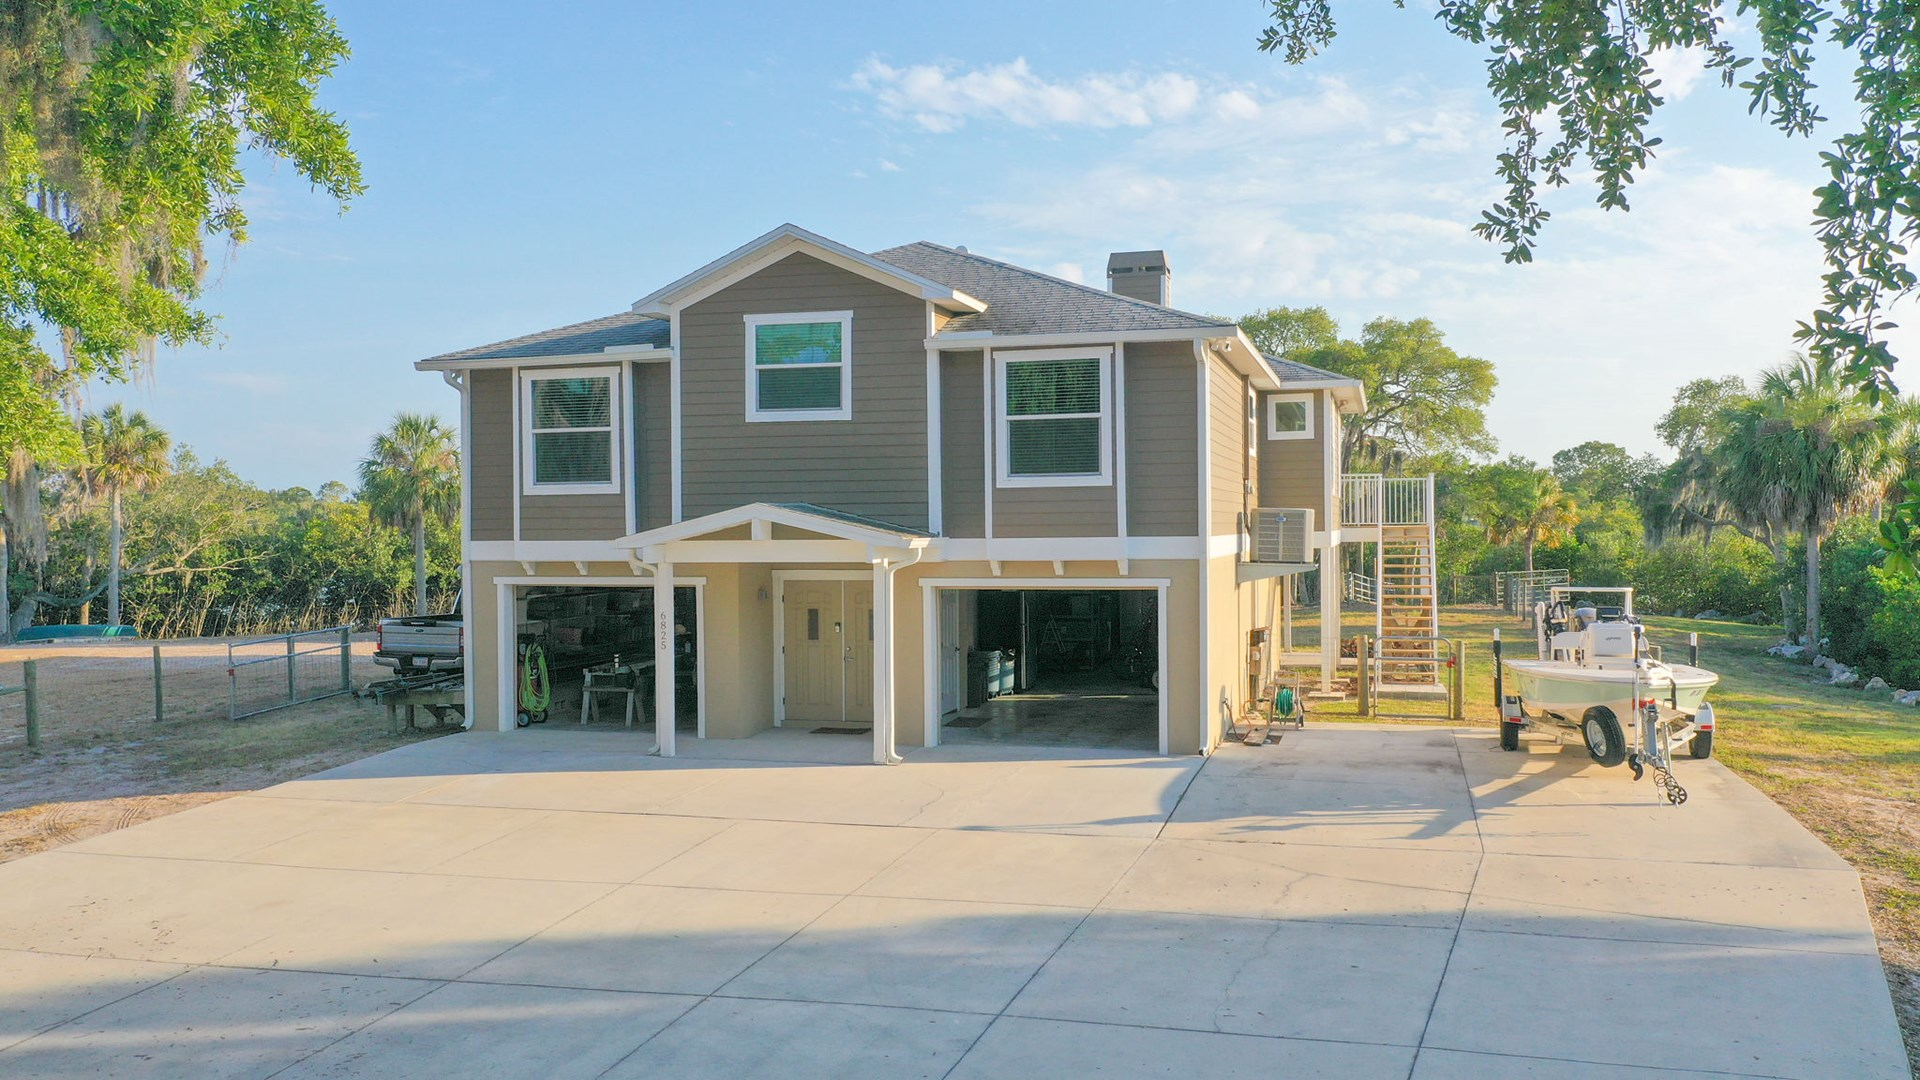 Pasco County, FL Coastal Equine Property with Home For Sale